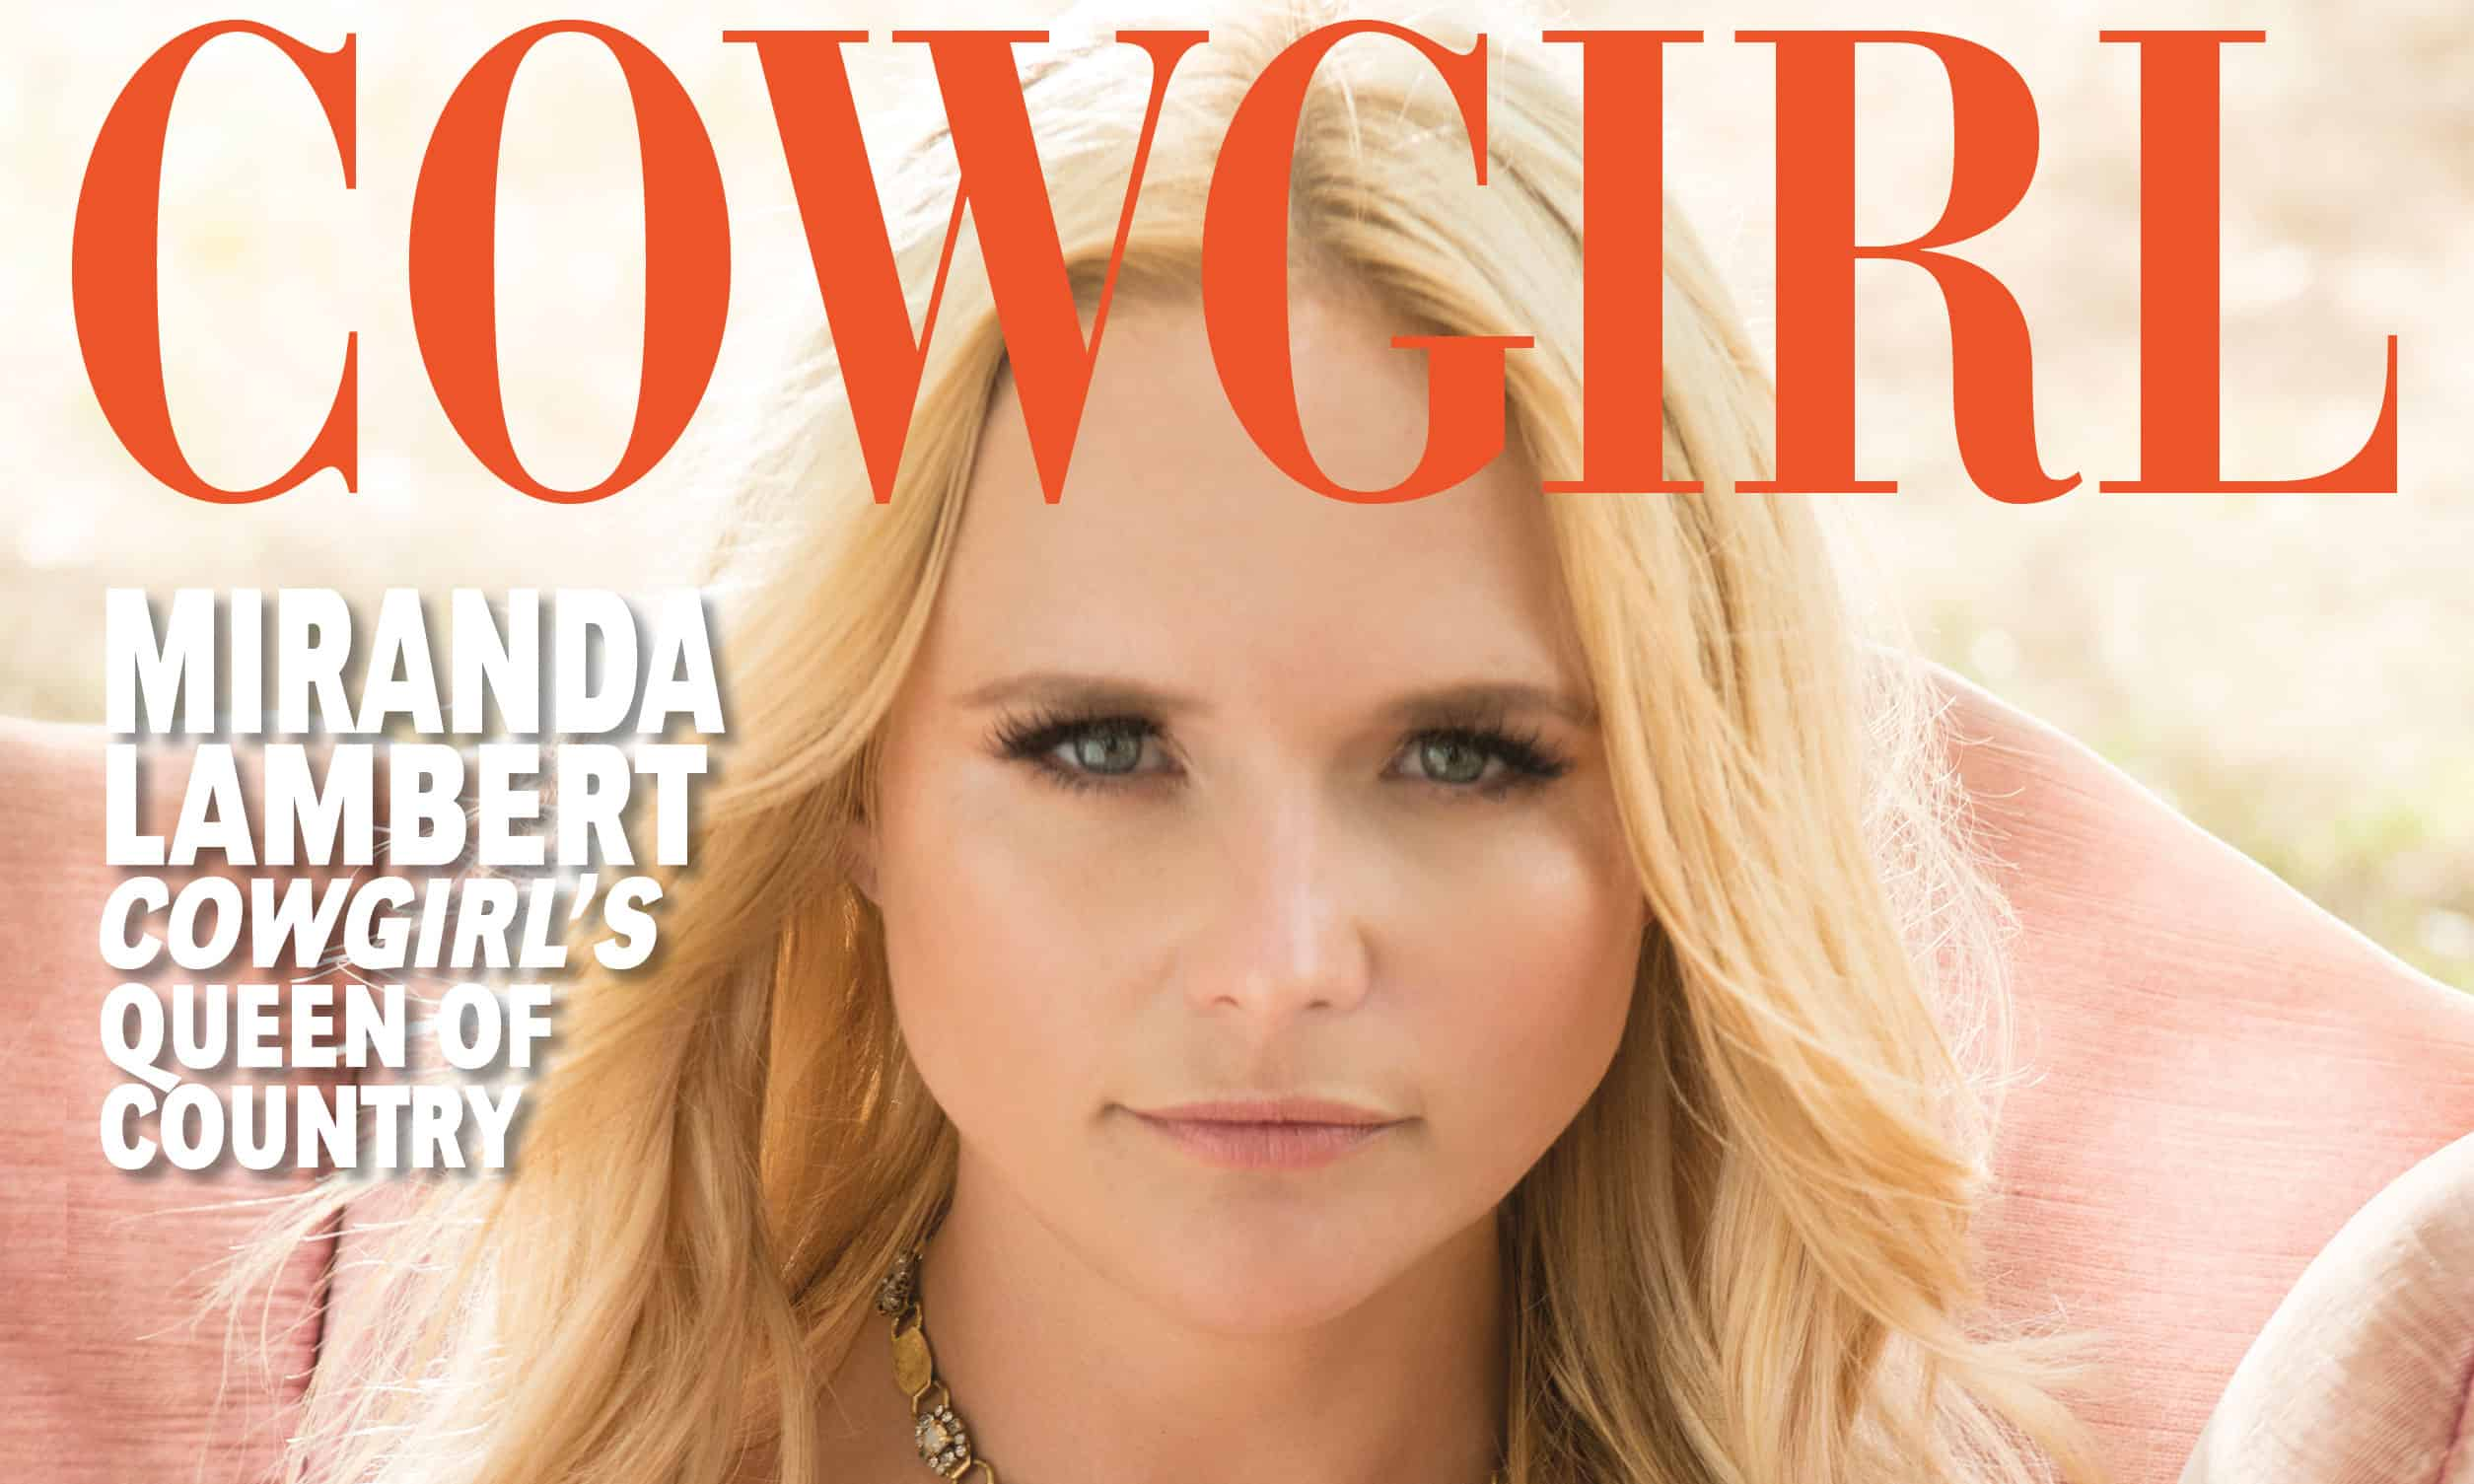 Current COWGIRL Magazine Cover Girl, Miranda Lambert, Launches her new single.